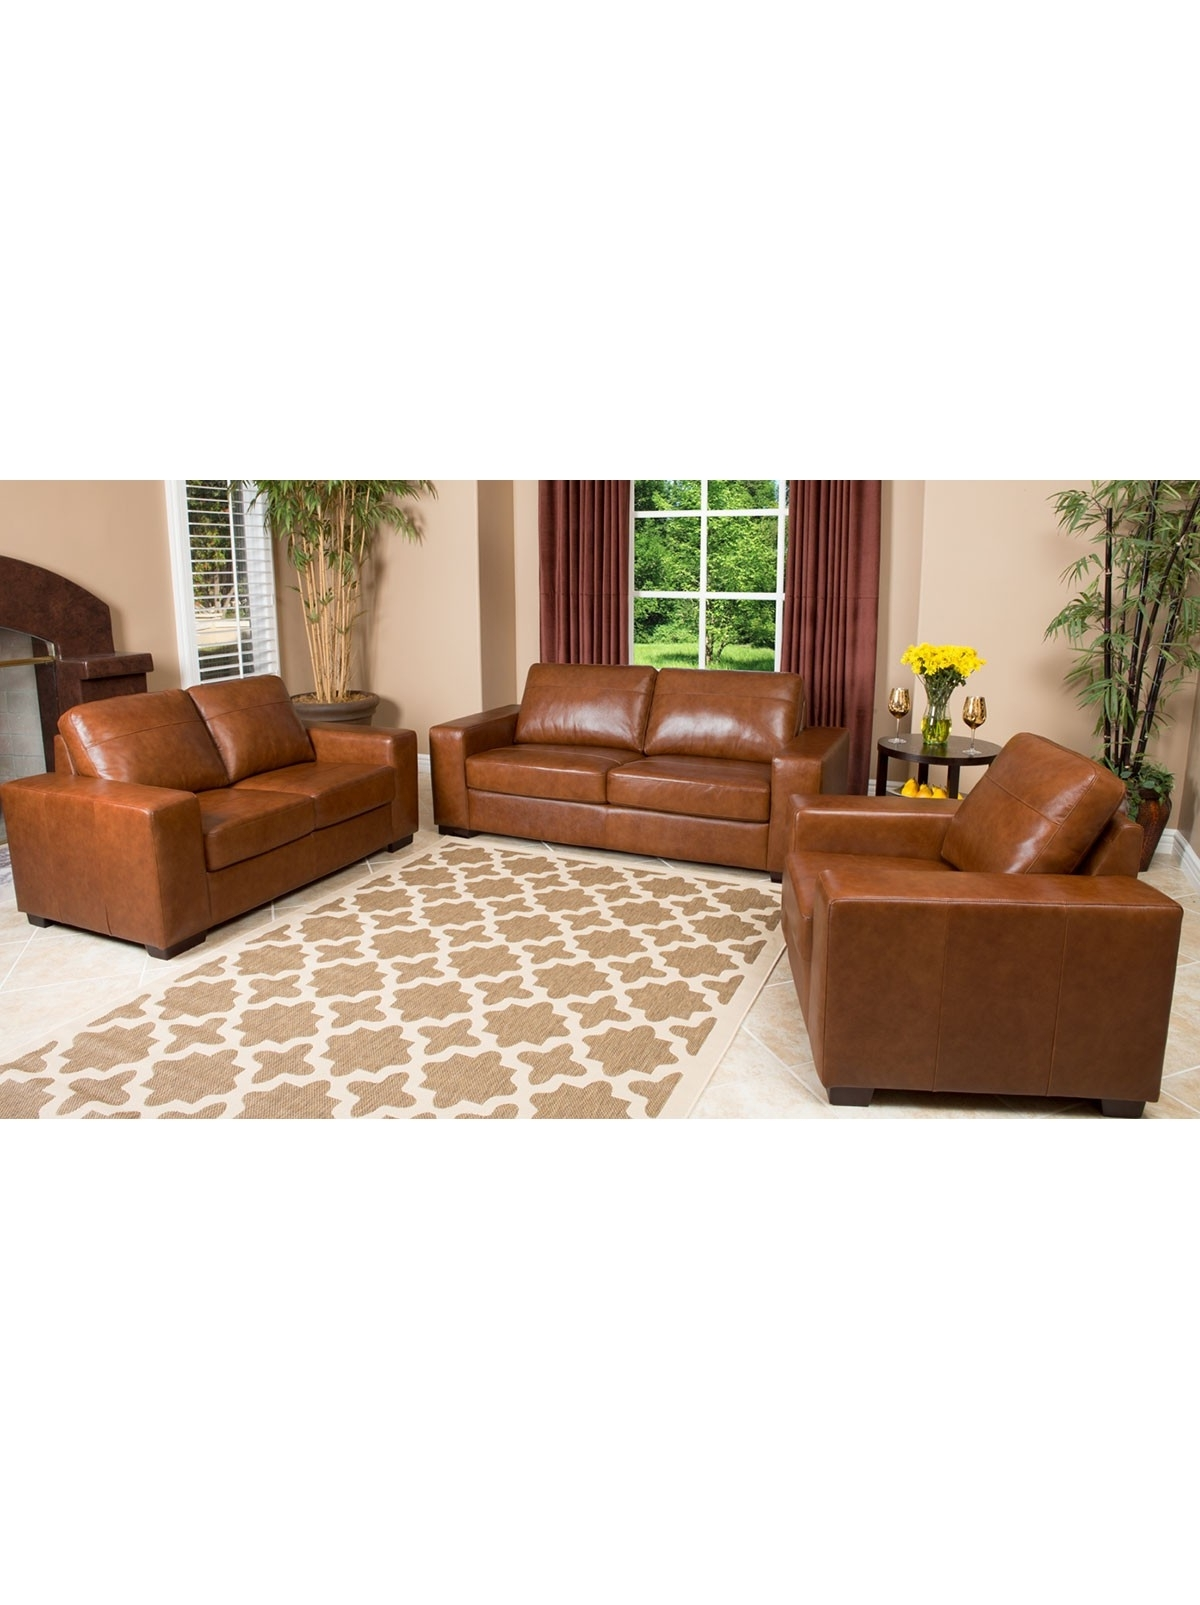 Popular Camel Colored Sectional Sofas With Regard To Leather Furniture Companies Pearce Camel Top Grain Couch F Living (View 12 of 15)